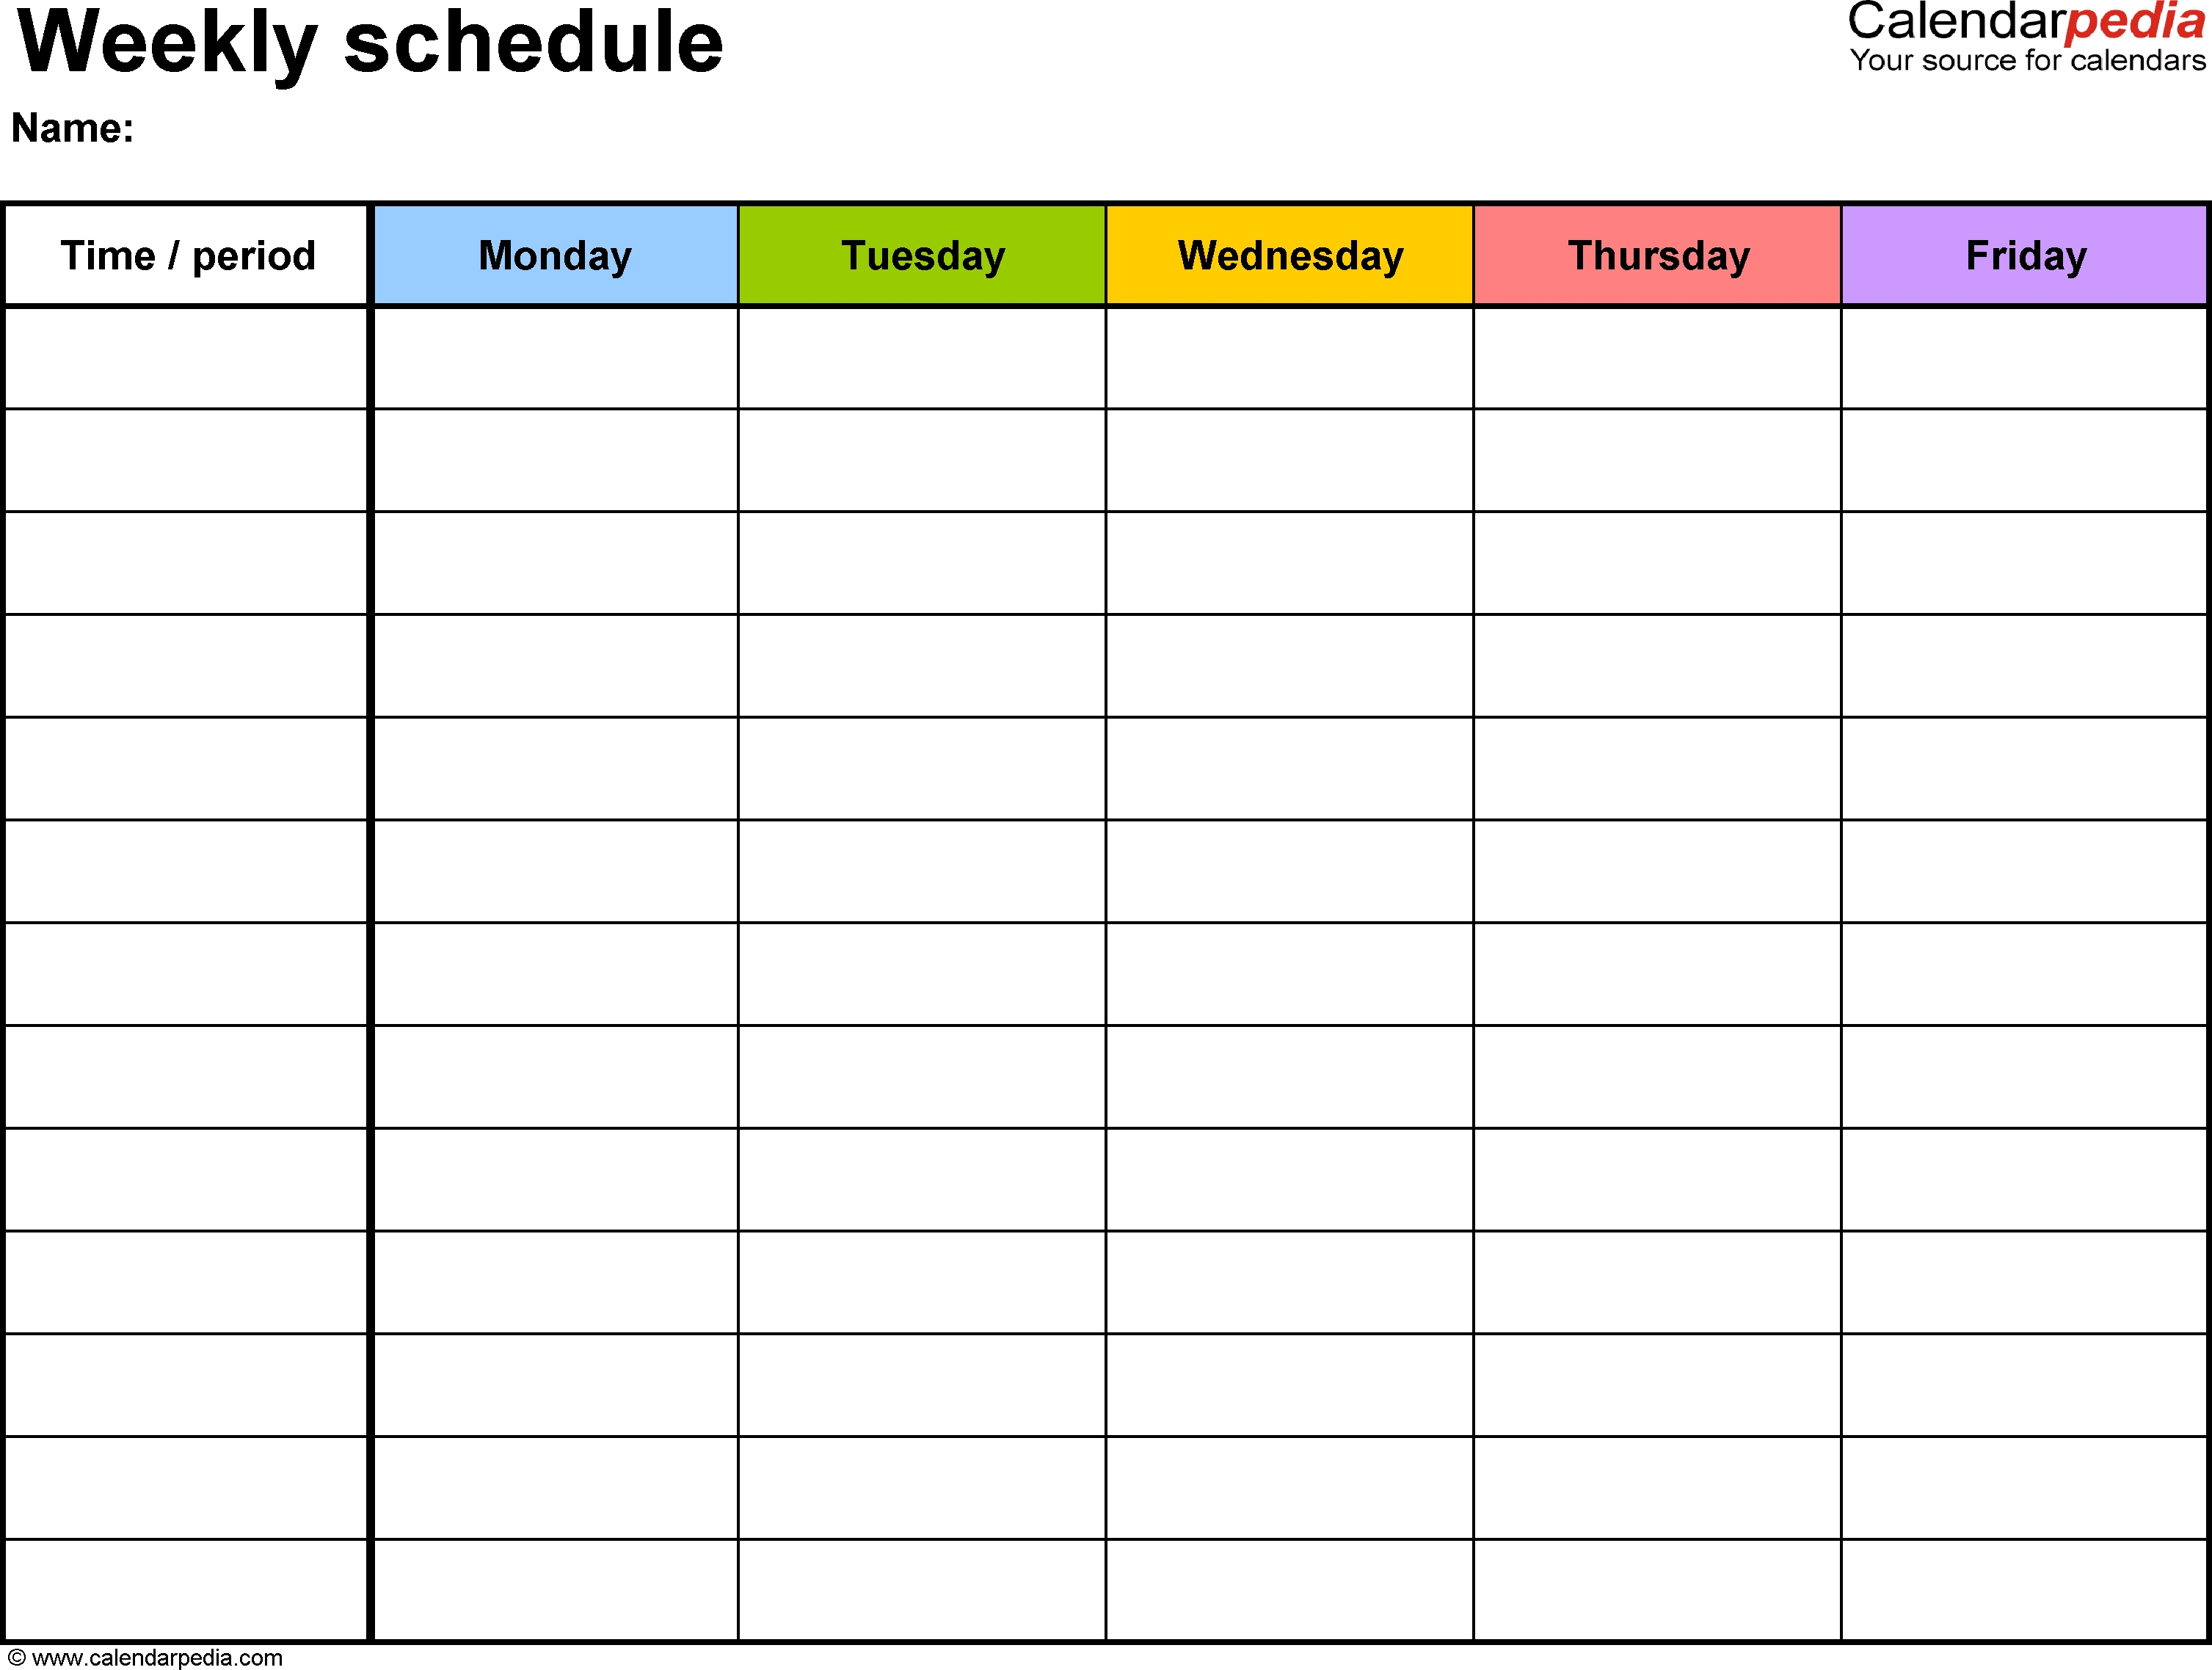 Free Weekly Schedule Templates For Excel - 18 Templates inside Printable Week By Week Schedule